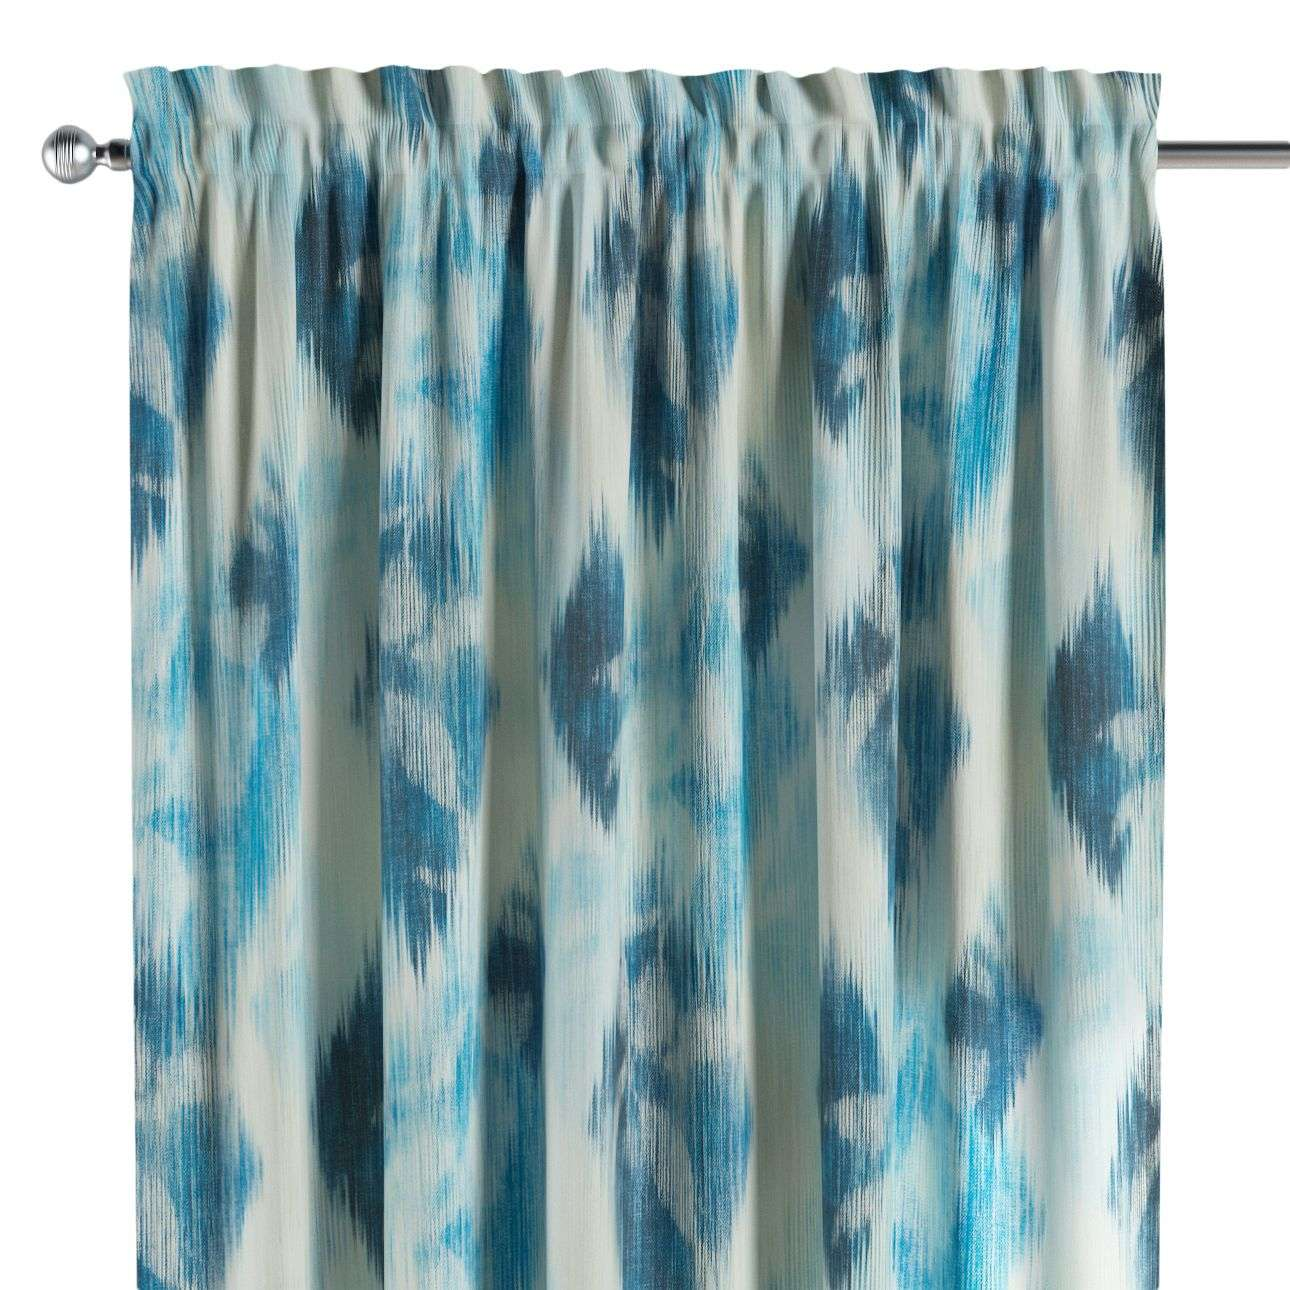 Slot and frill curtains 130 × 260 cm (51 × 102 inch) in collection Aquarelle, fabric: 140-71